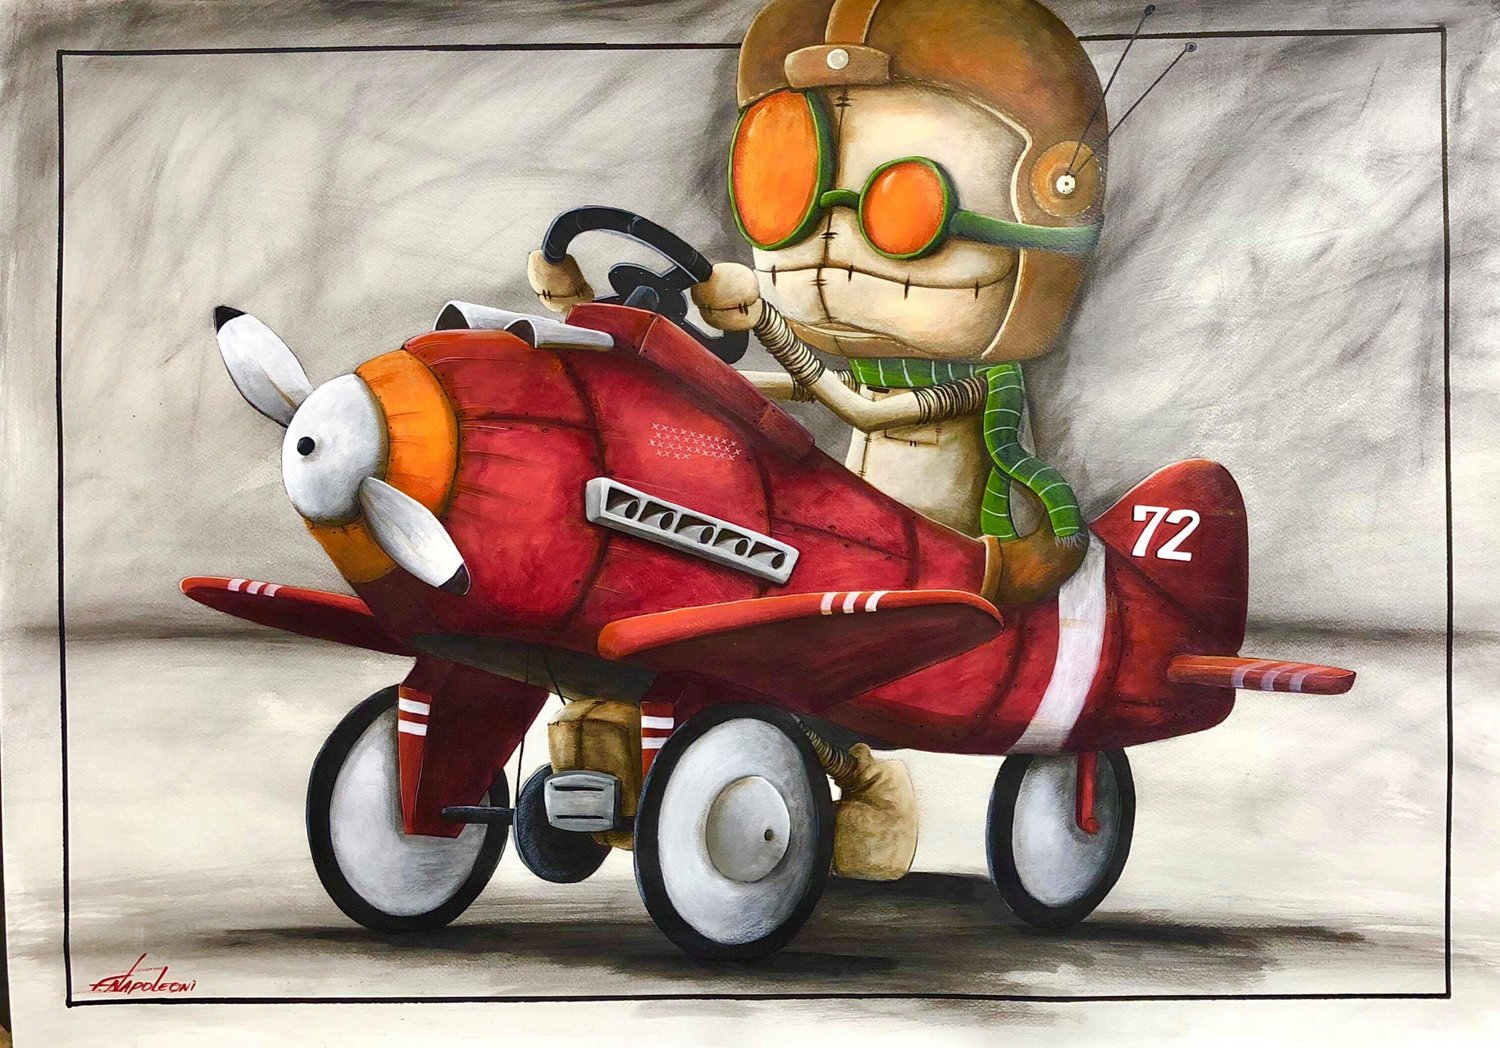 Fabio Napoleoni Next Level Here I Come (AP)